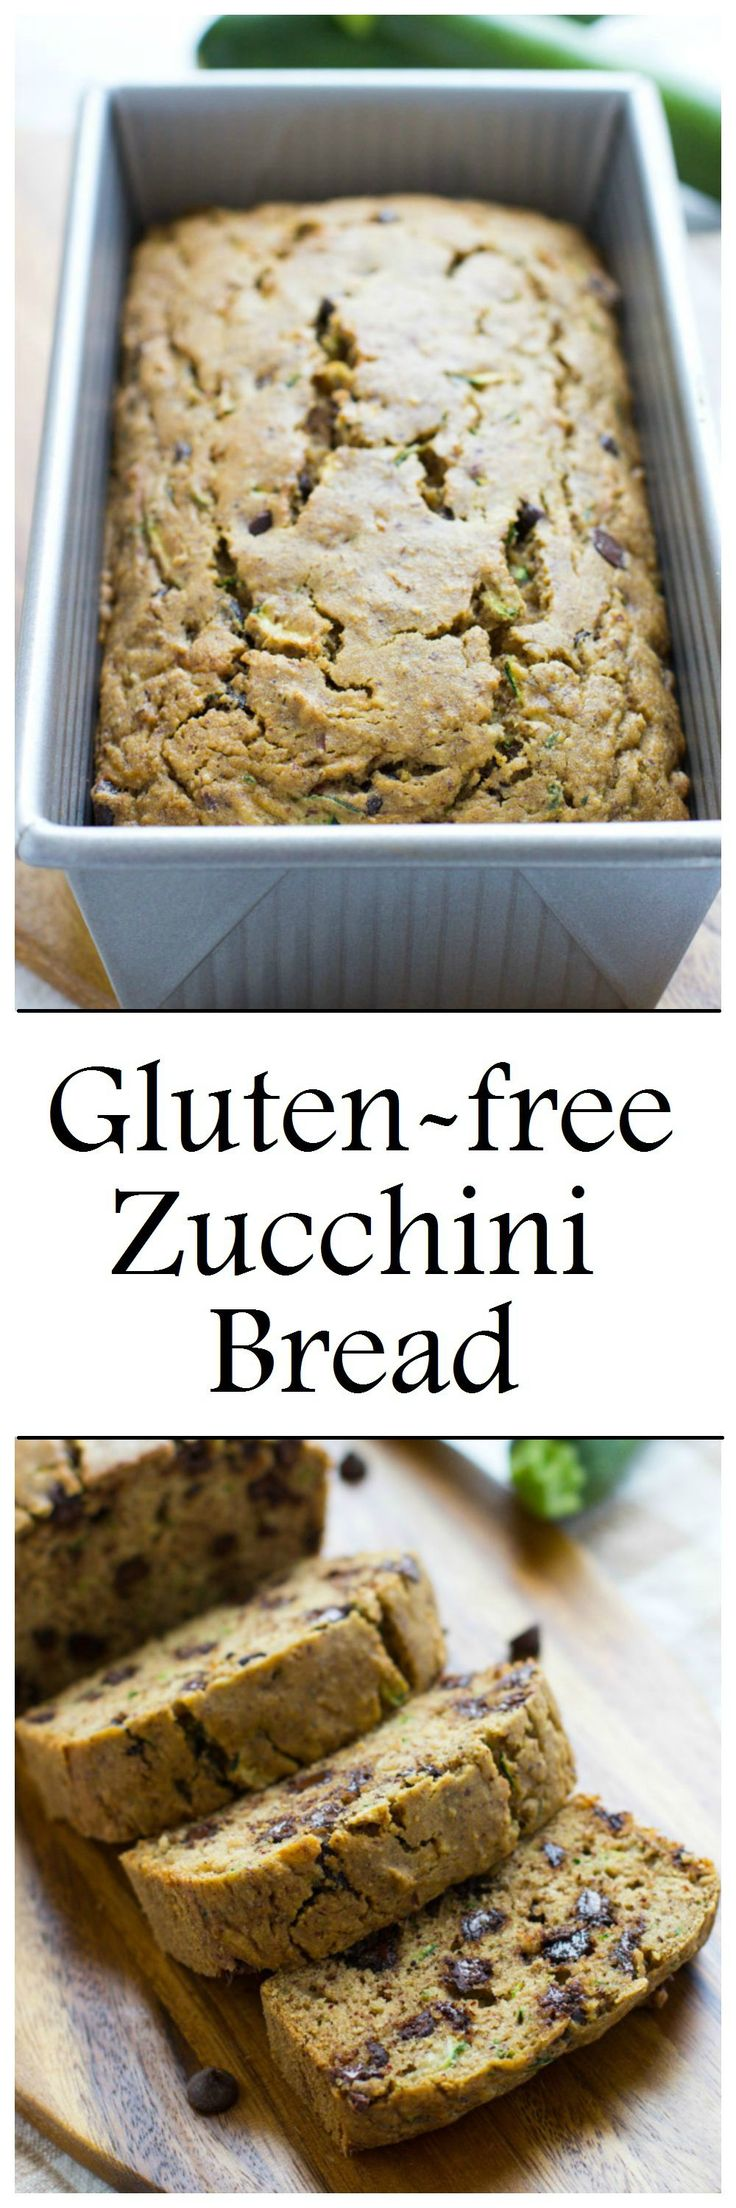 Gluten-free Zucchini Bread- so delicious, you'd never guess it's healthy! #dairyfree #refinedsugarfree #starchfree